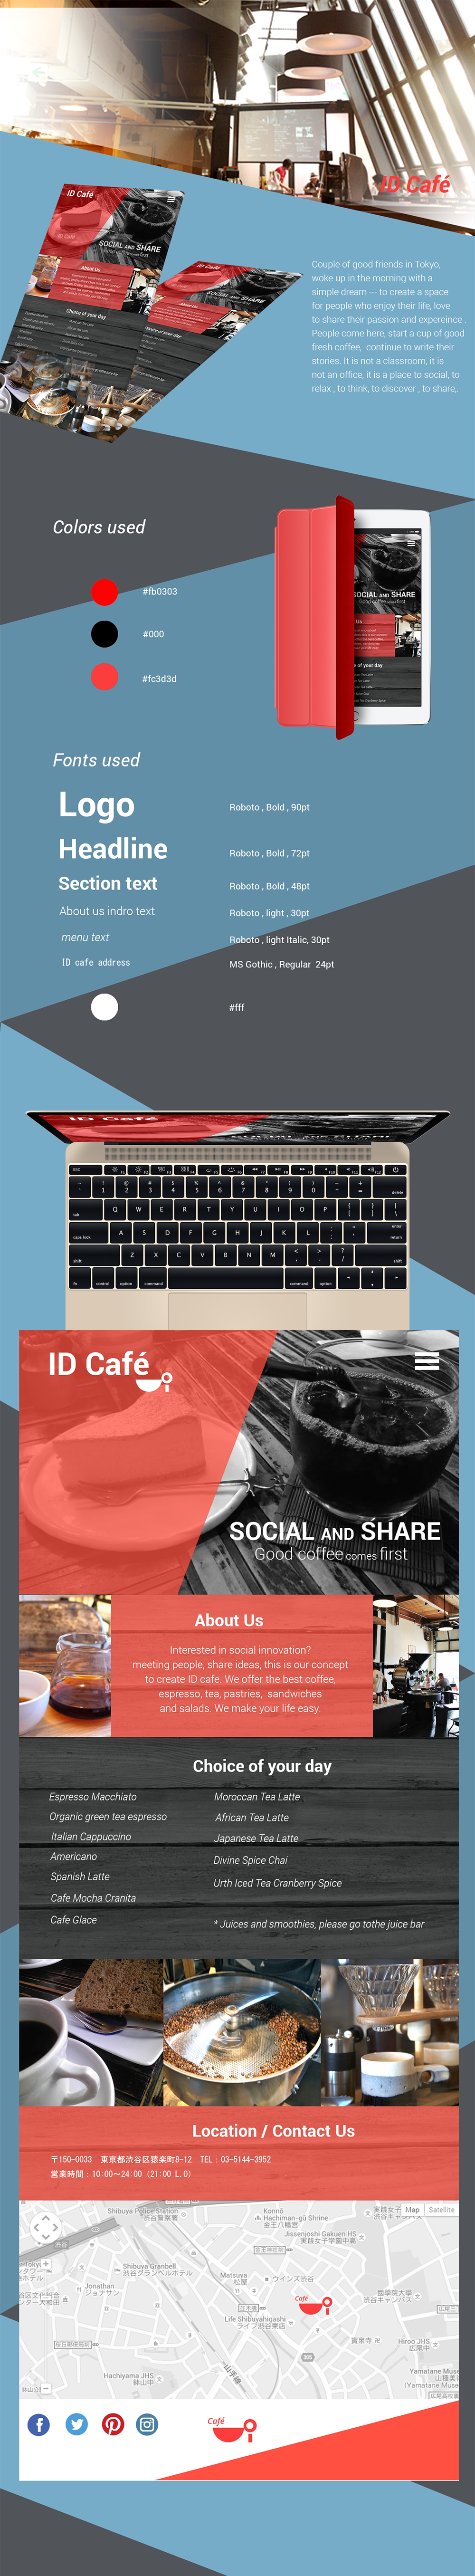 ID cafe page presentation